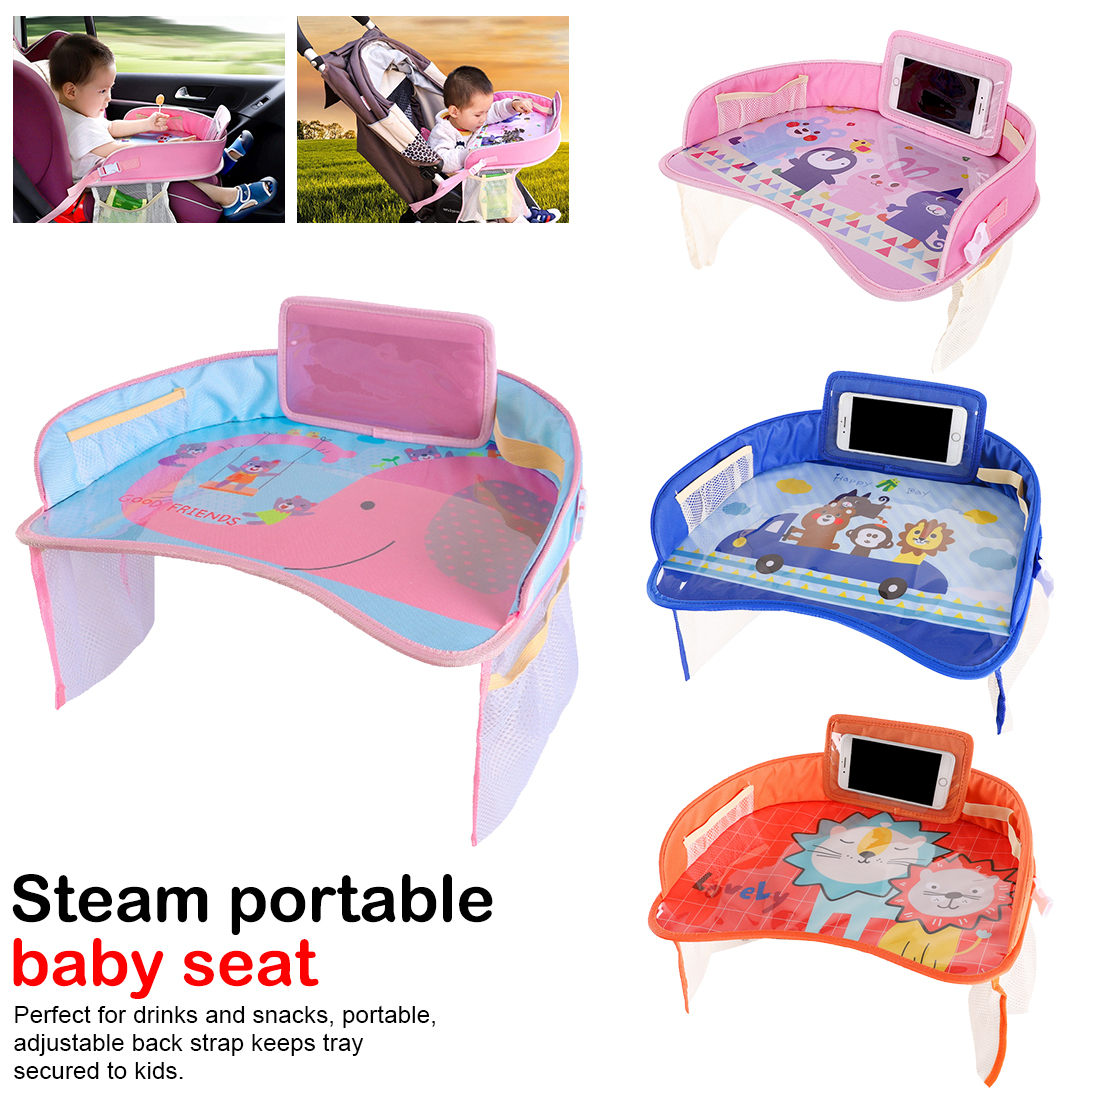 2019 Hot Sell!Car Baby Safety Seat Tray Child Car Can Be Stored Waterproof Cart Plate Small Table